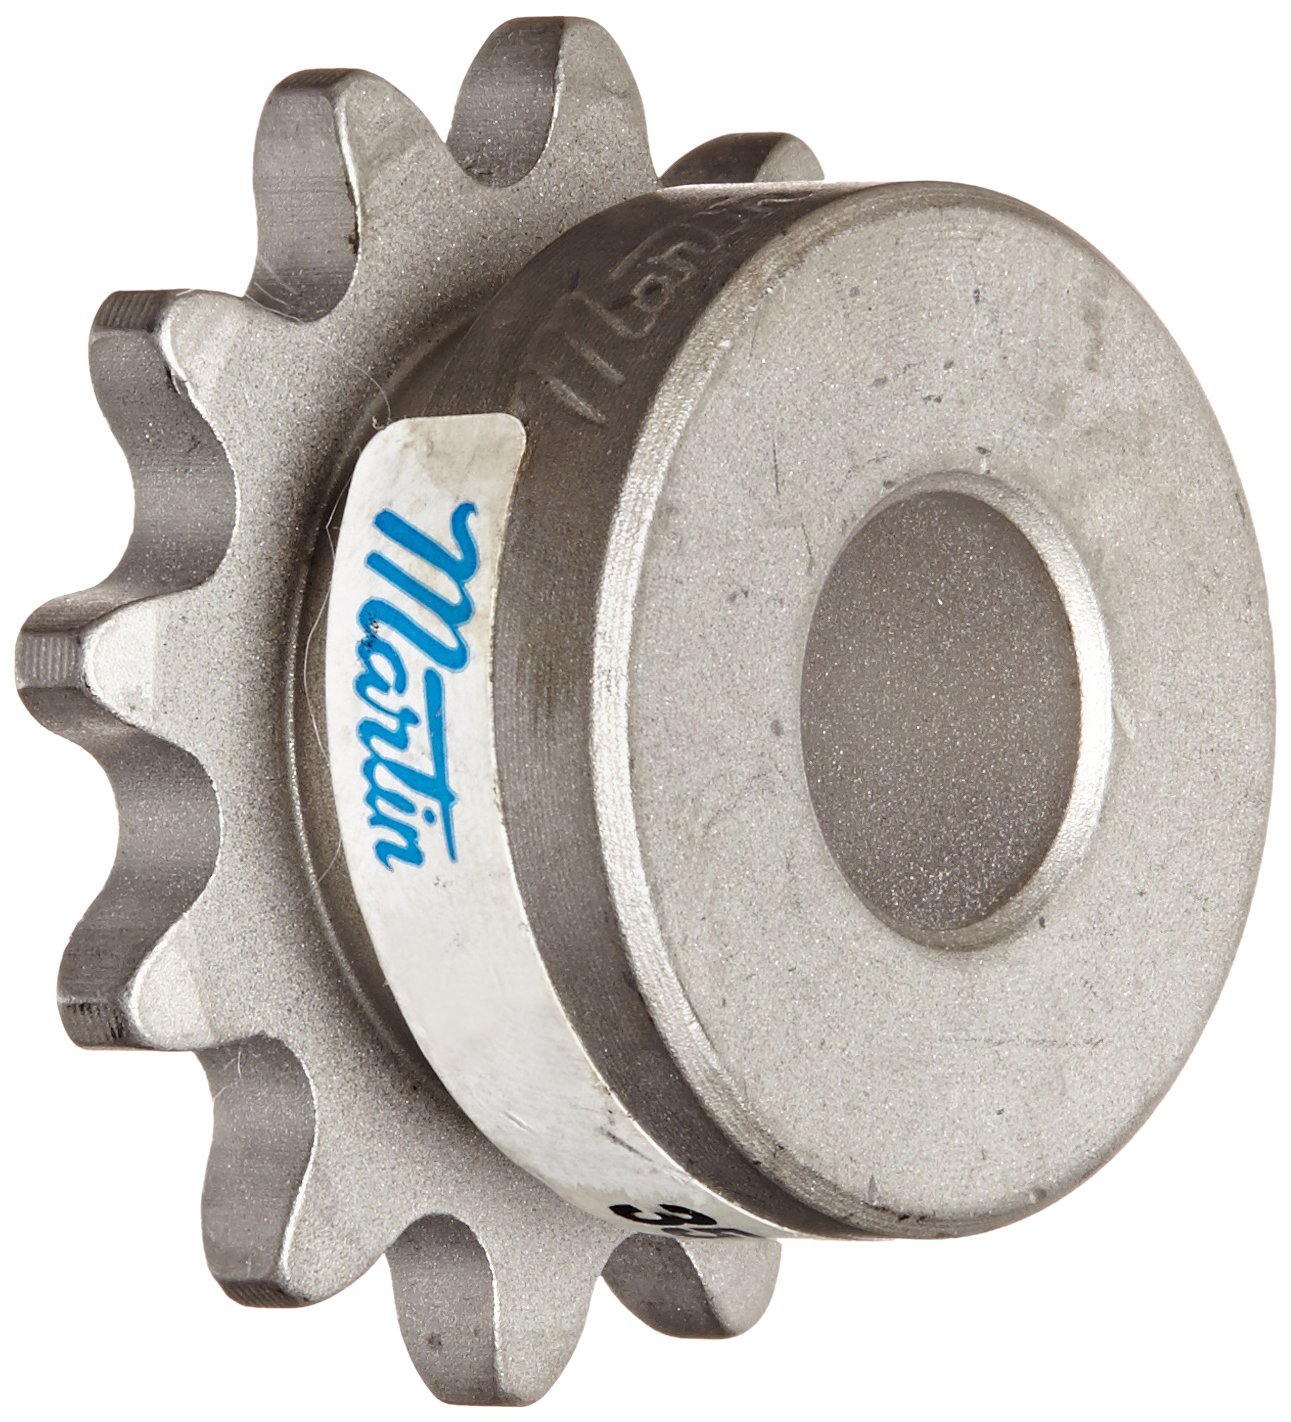 Martin Roller Chain Sprocket, Stainless Steel, Reboreable, Type B Hub, Single Strand, 35 Chain Size, 0.375'' Pitch, 12 Teeth, 0.5'' Bore Dia., 1.625'' OD, 1.219'' Hub Dia., 0.168'' Width